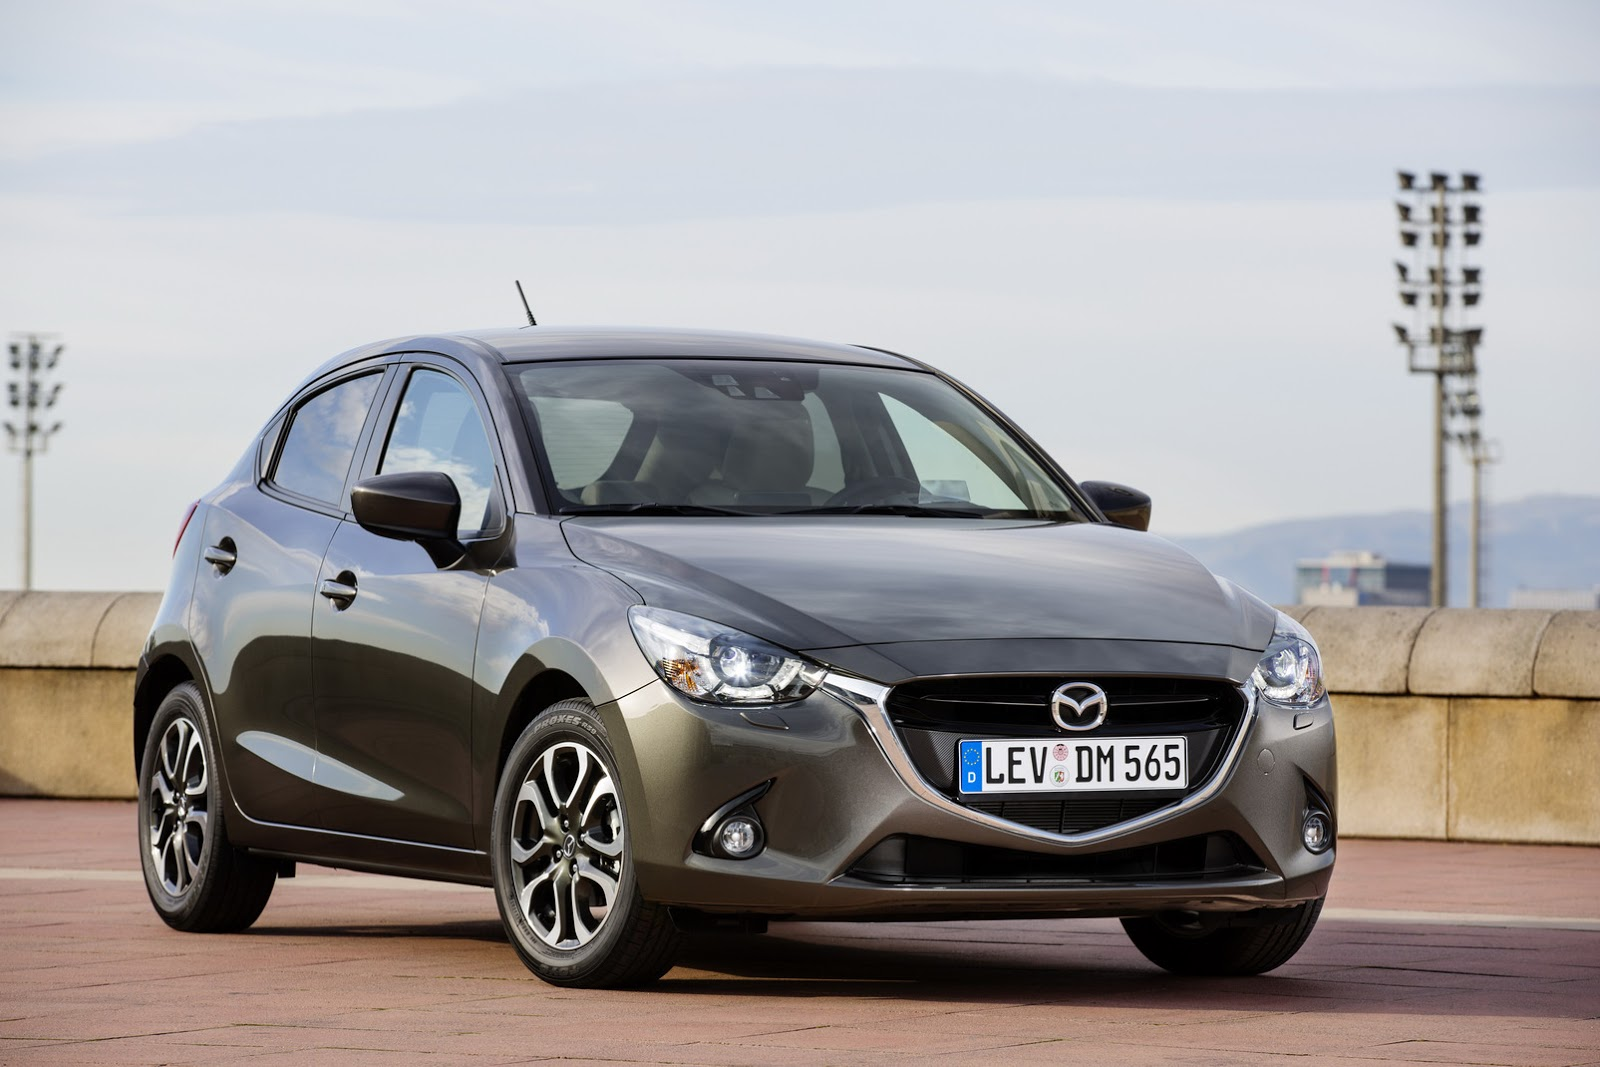 New Mazda 2 New Mazda 2 Won 39t Be Offered To American Buyers At Least